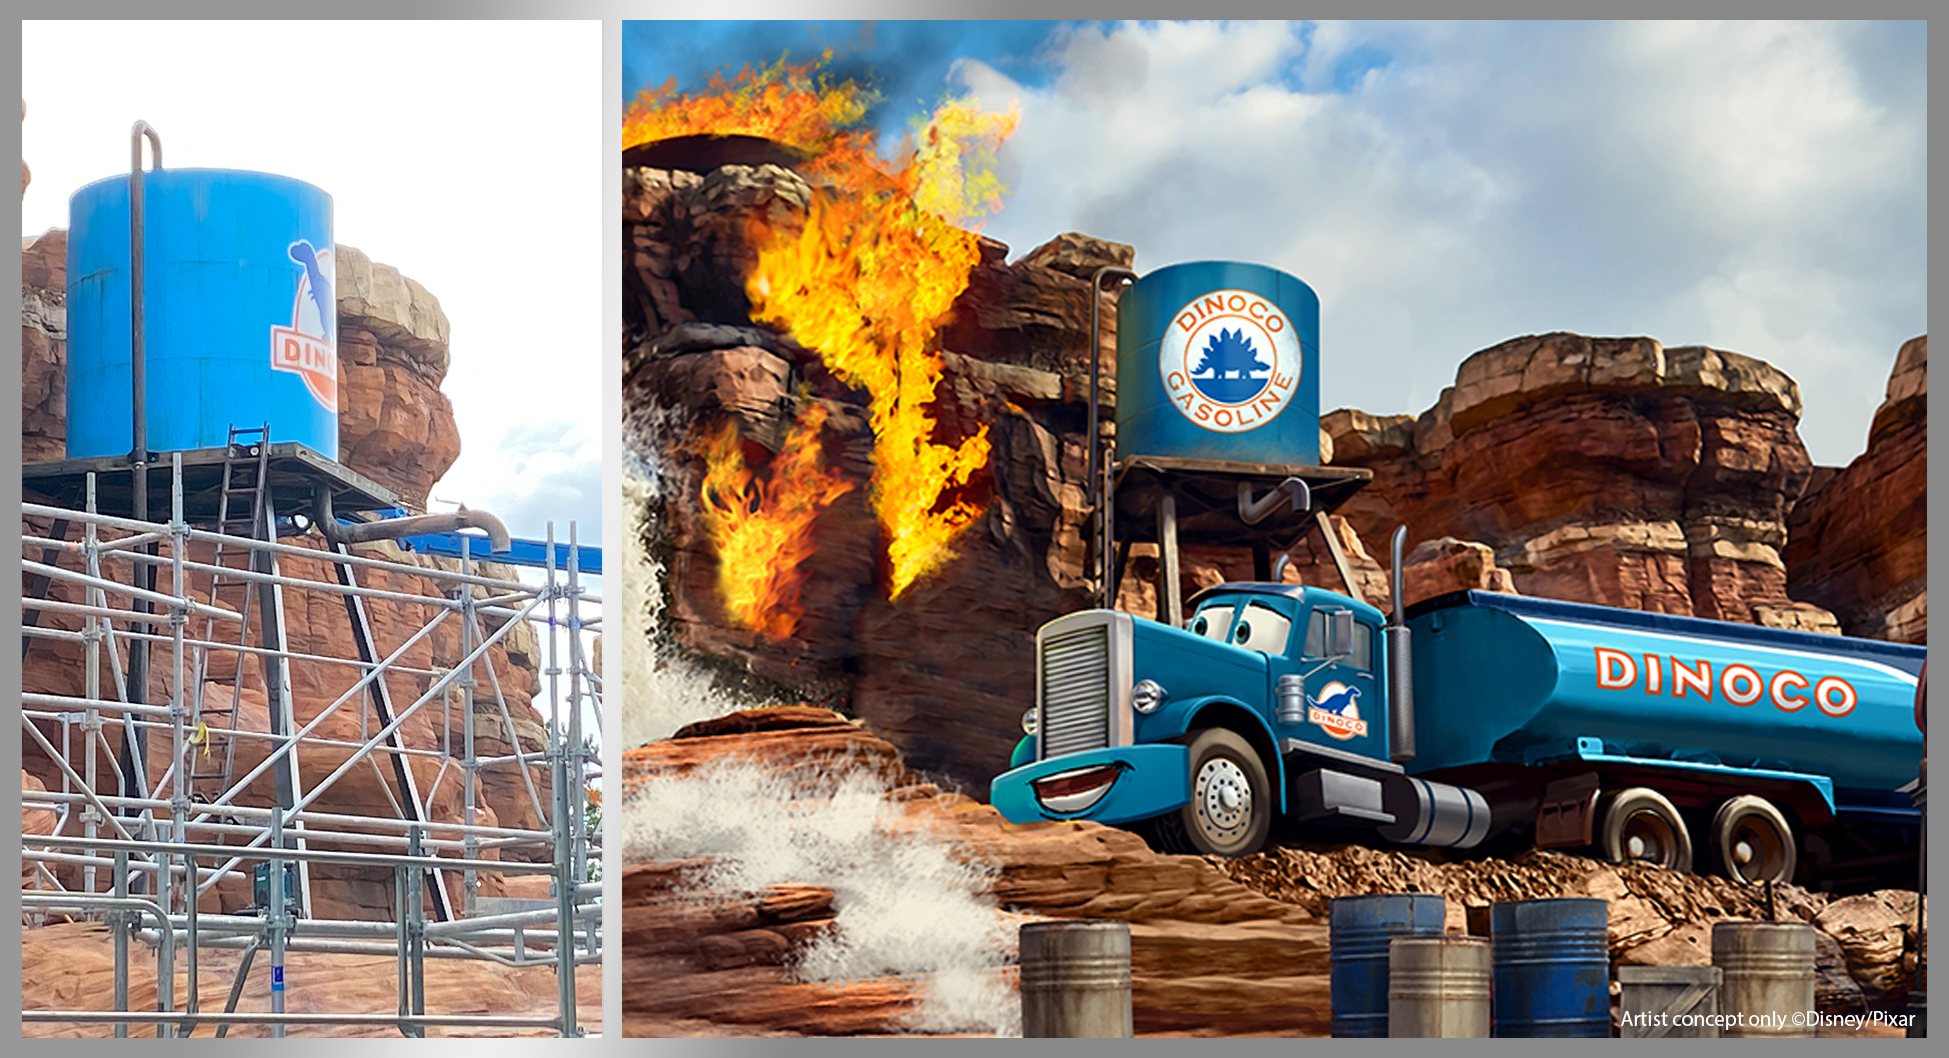 Cars Route 66 Road Trip coming soon at Disneyland Paris